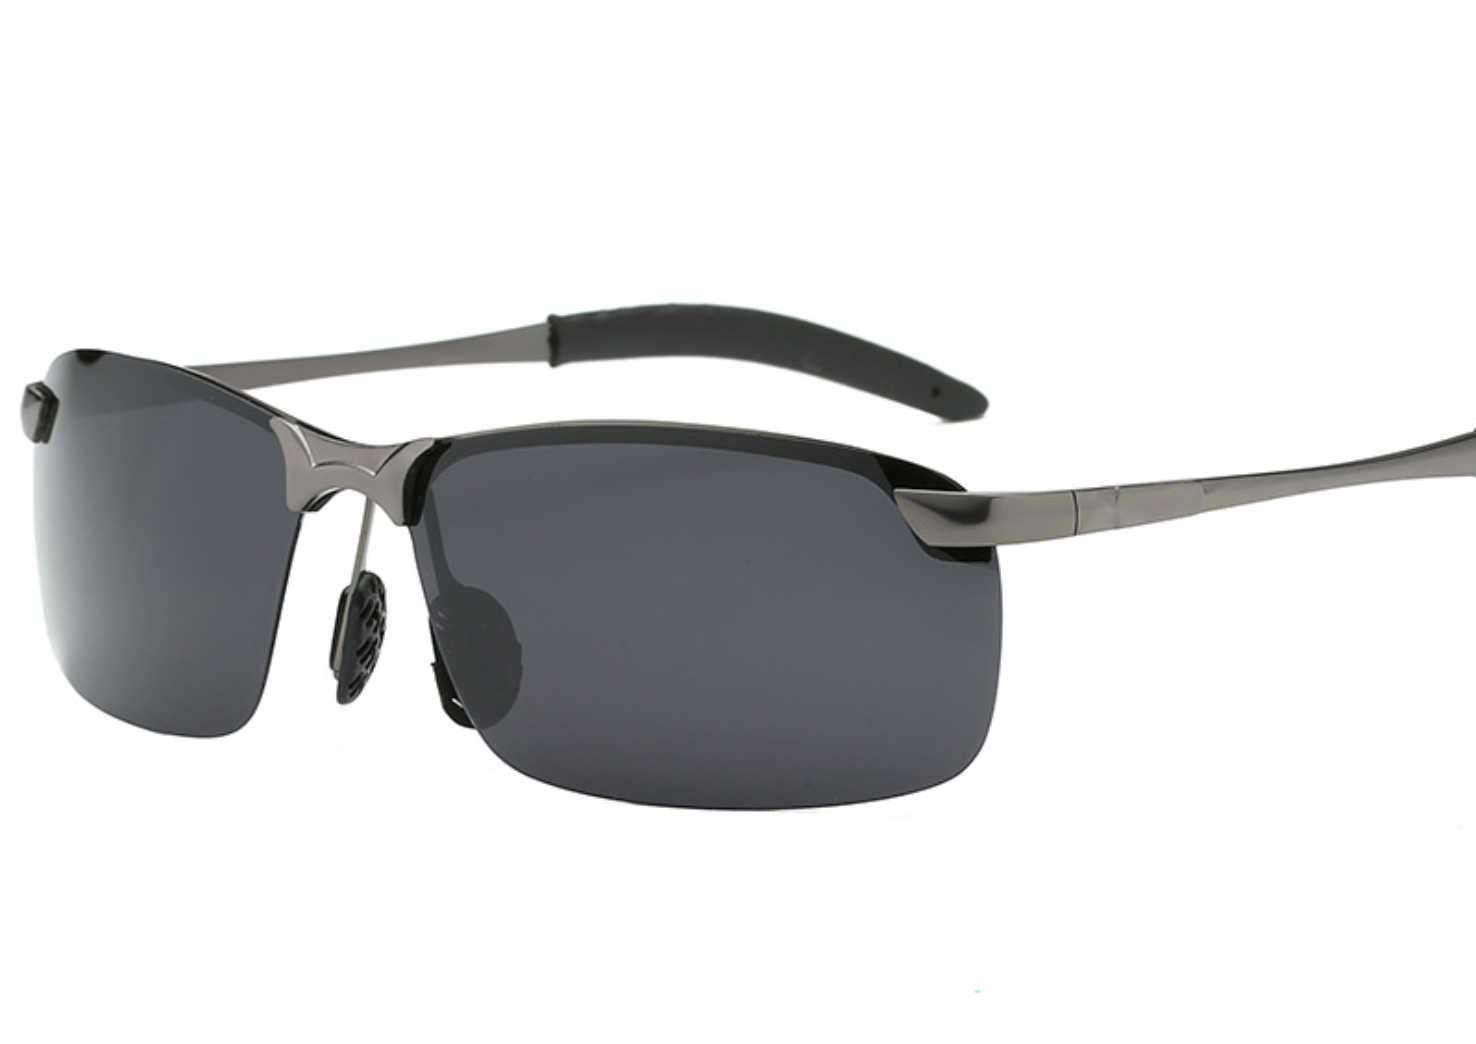 Photochromic Polarized Day and Night Sunglasses